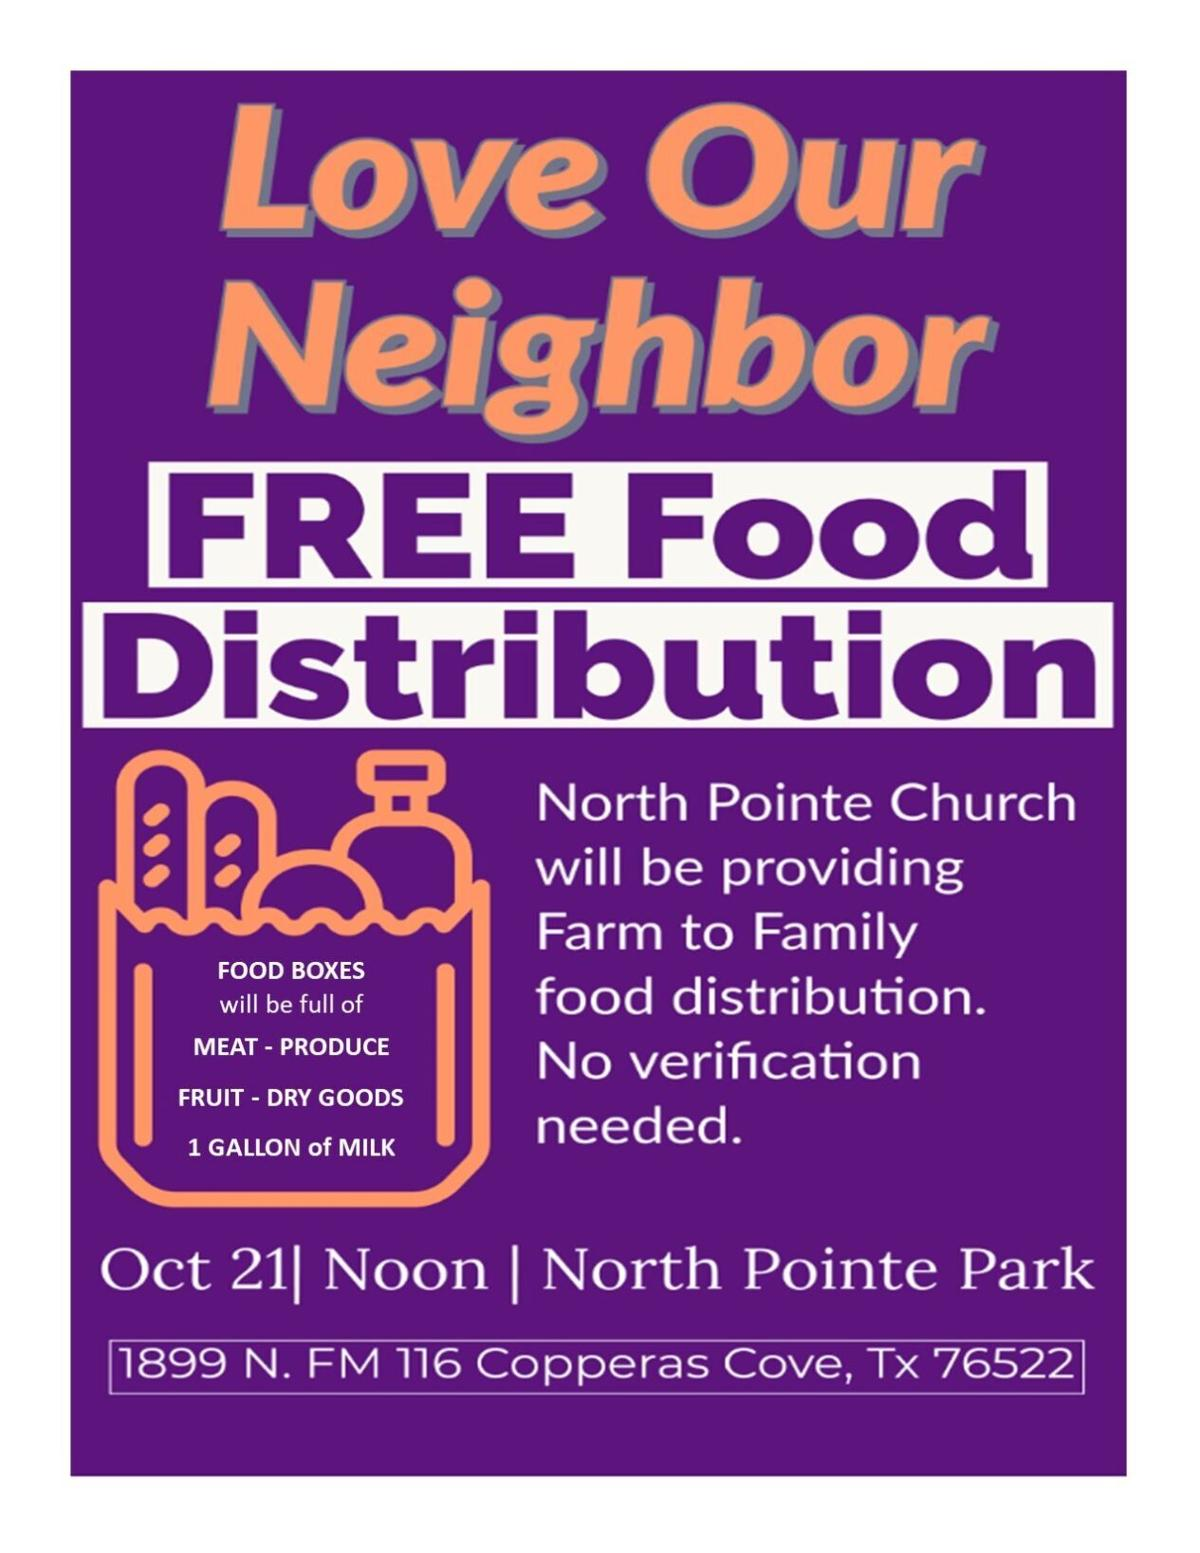 Cove church hosting free food distribution today